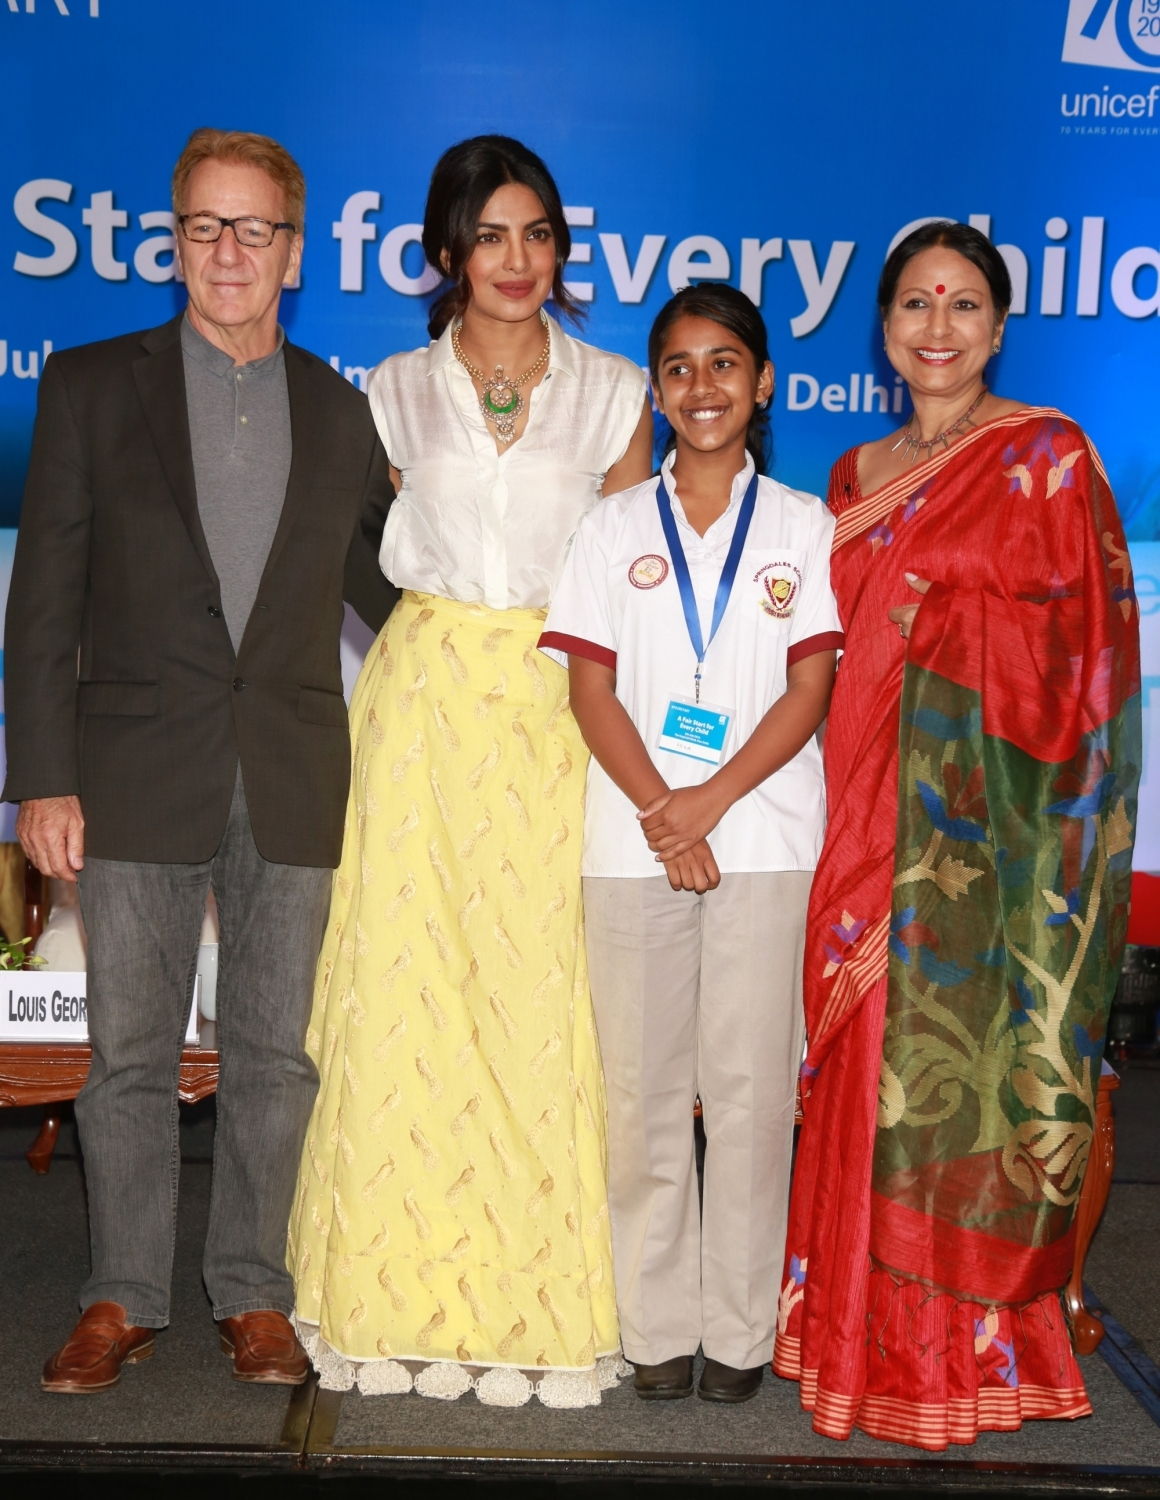 Priyanka Chopra Attends the UNICEF Event in New Delhi